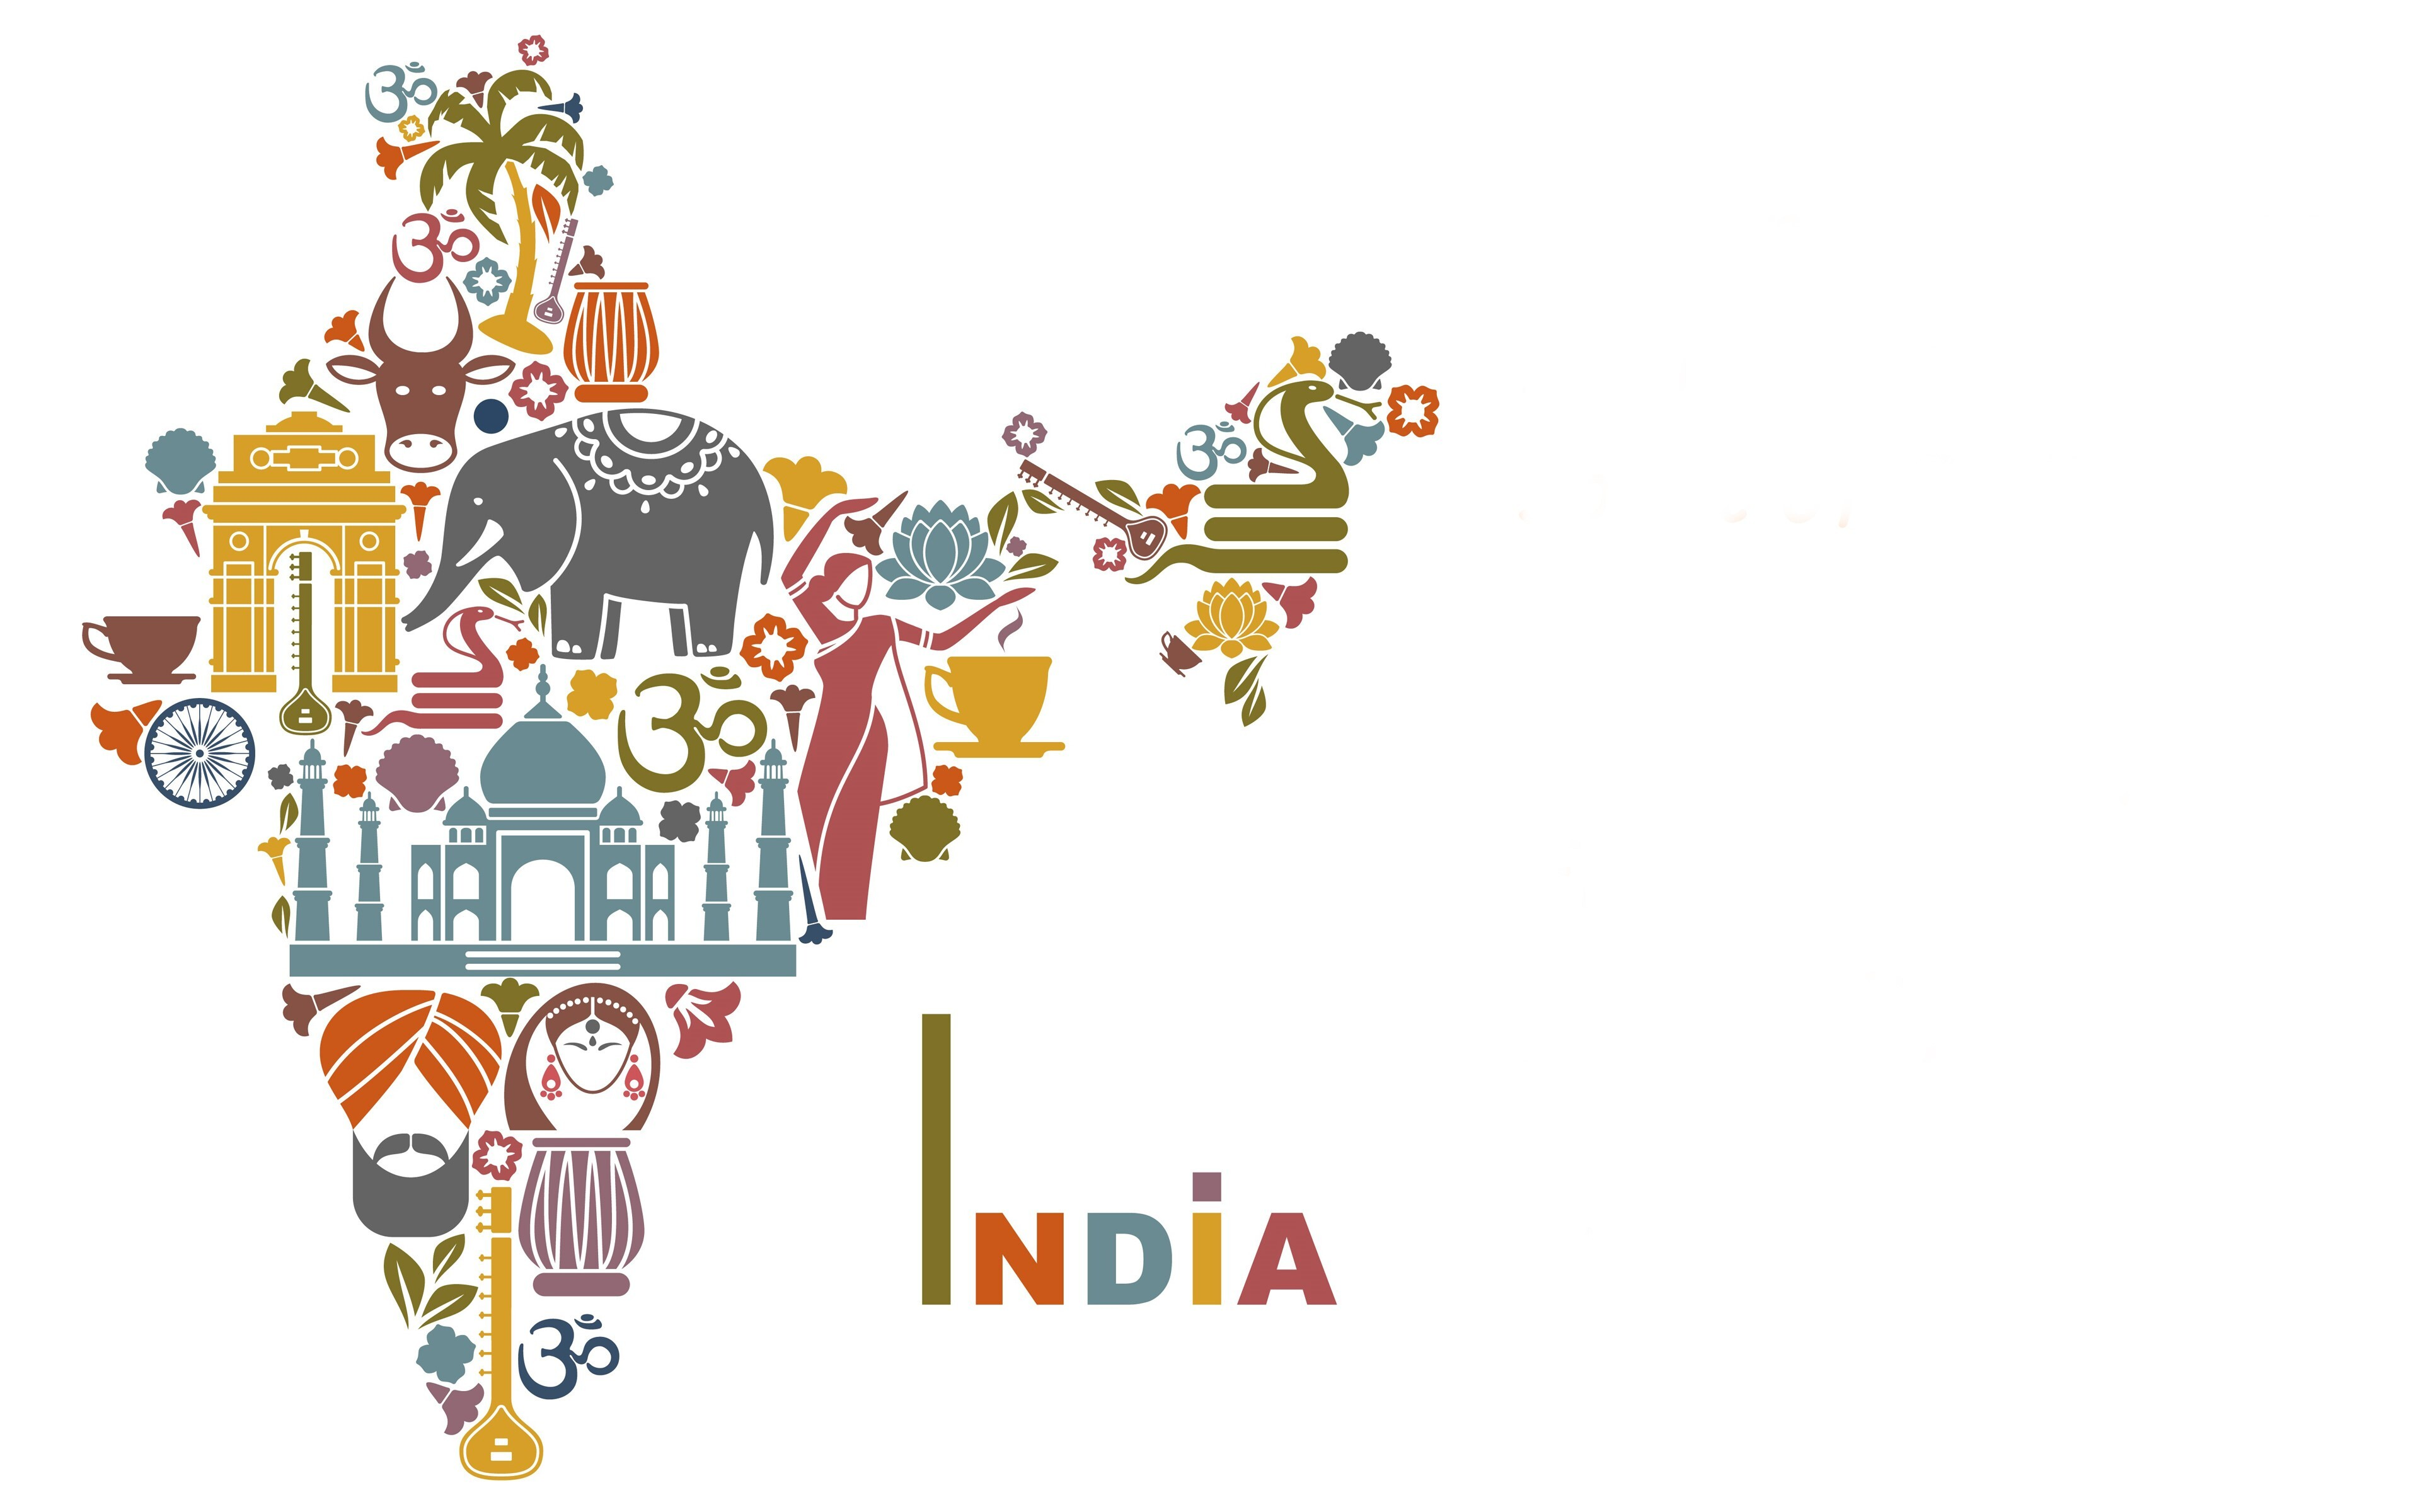 India Map Wallpapers India Traditional Map 4K Wallpaper | HD Wallpapers India Map Wallpapers